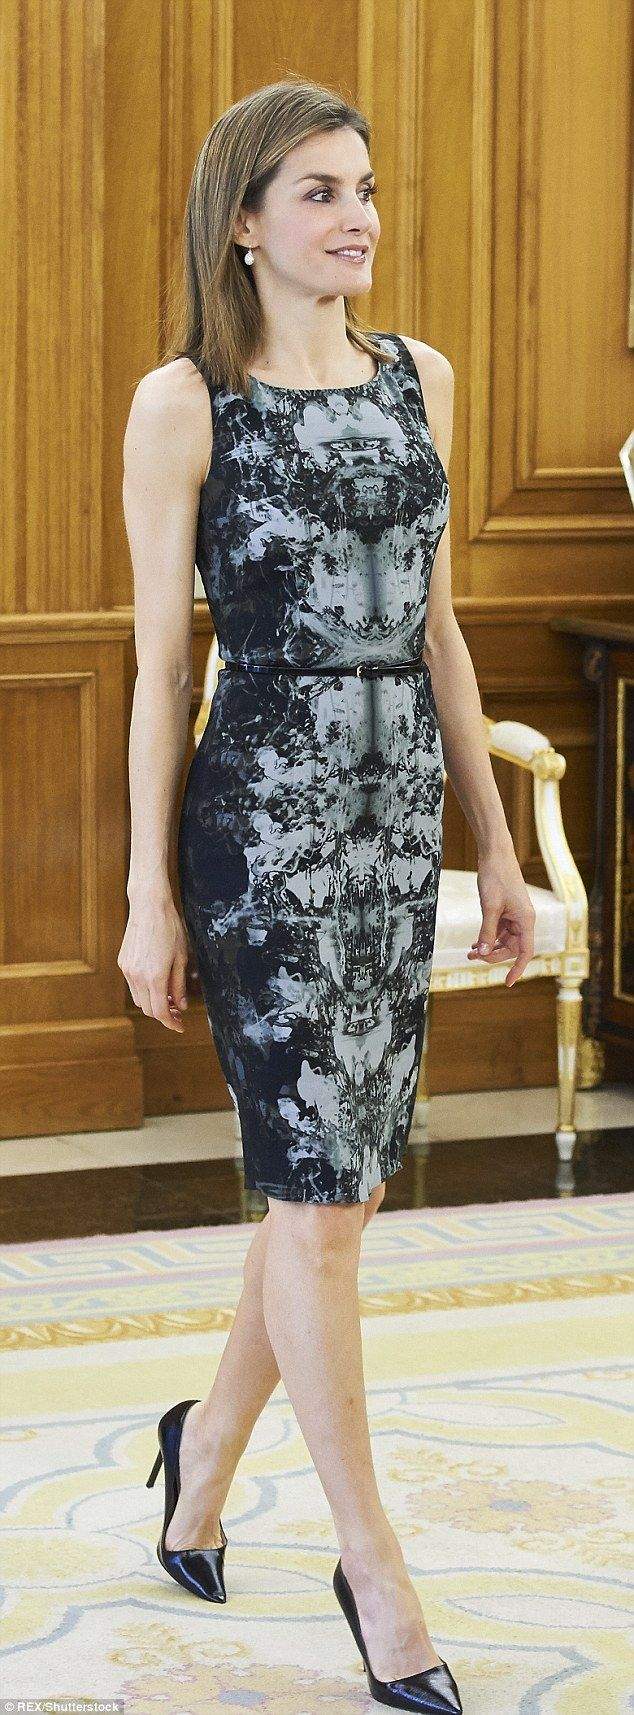 The abstract tight-fitting dress had its first airing in 2013 and is clearly a dress that Letizia feels comfortable wearing to high-profile occasions